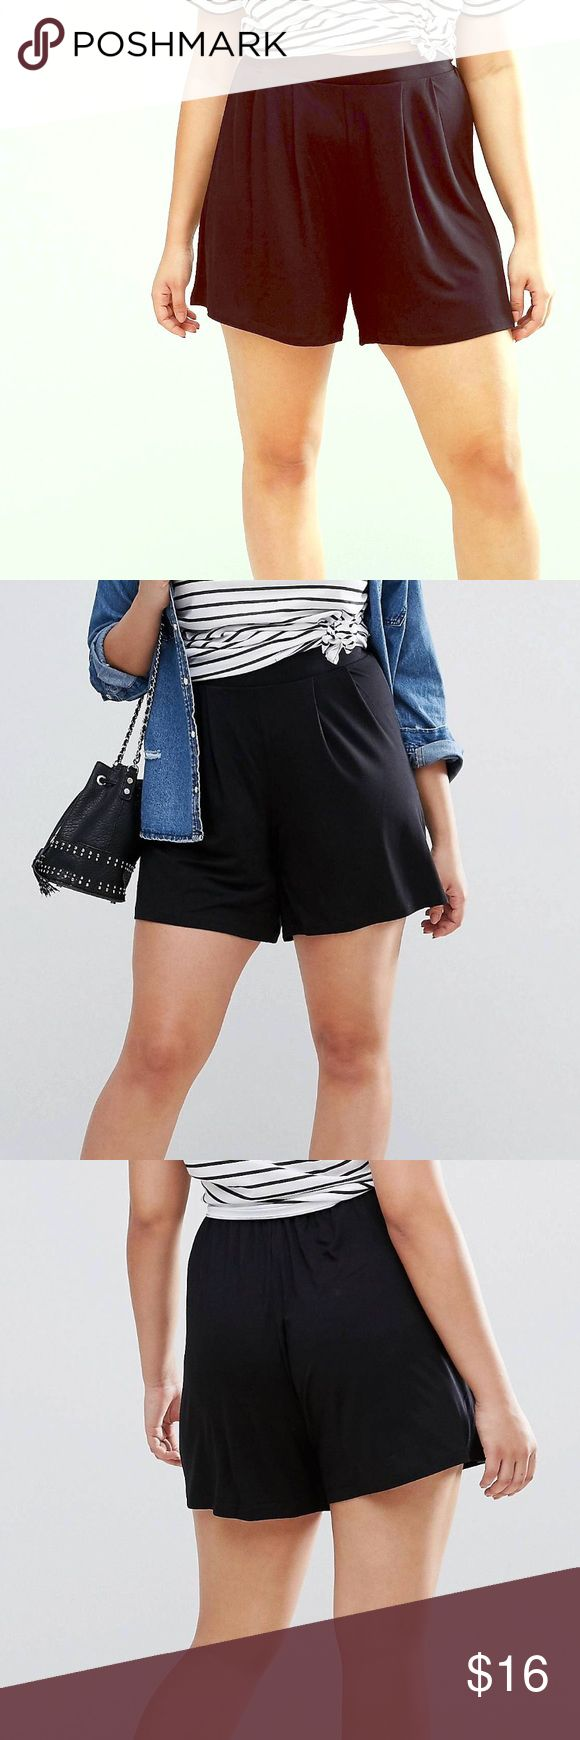 ASOS Curve Pleated Culotte Shorts Never worn with tag. These don't flatter me at all so I used stock photos, sorry! Adorable stretch shorts from ASOS curve. ASOS Curve Shorts